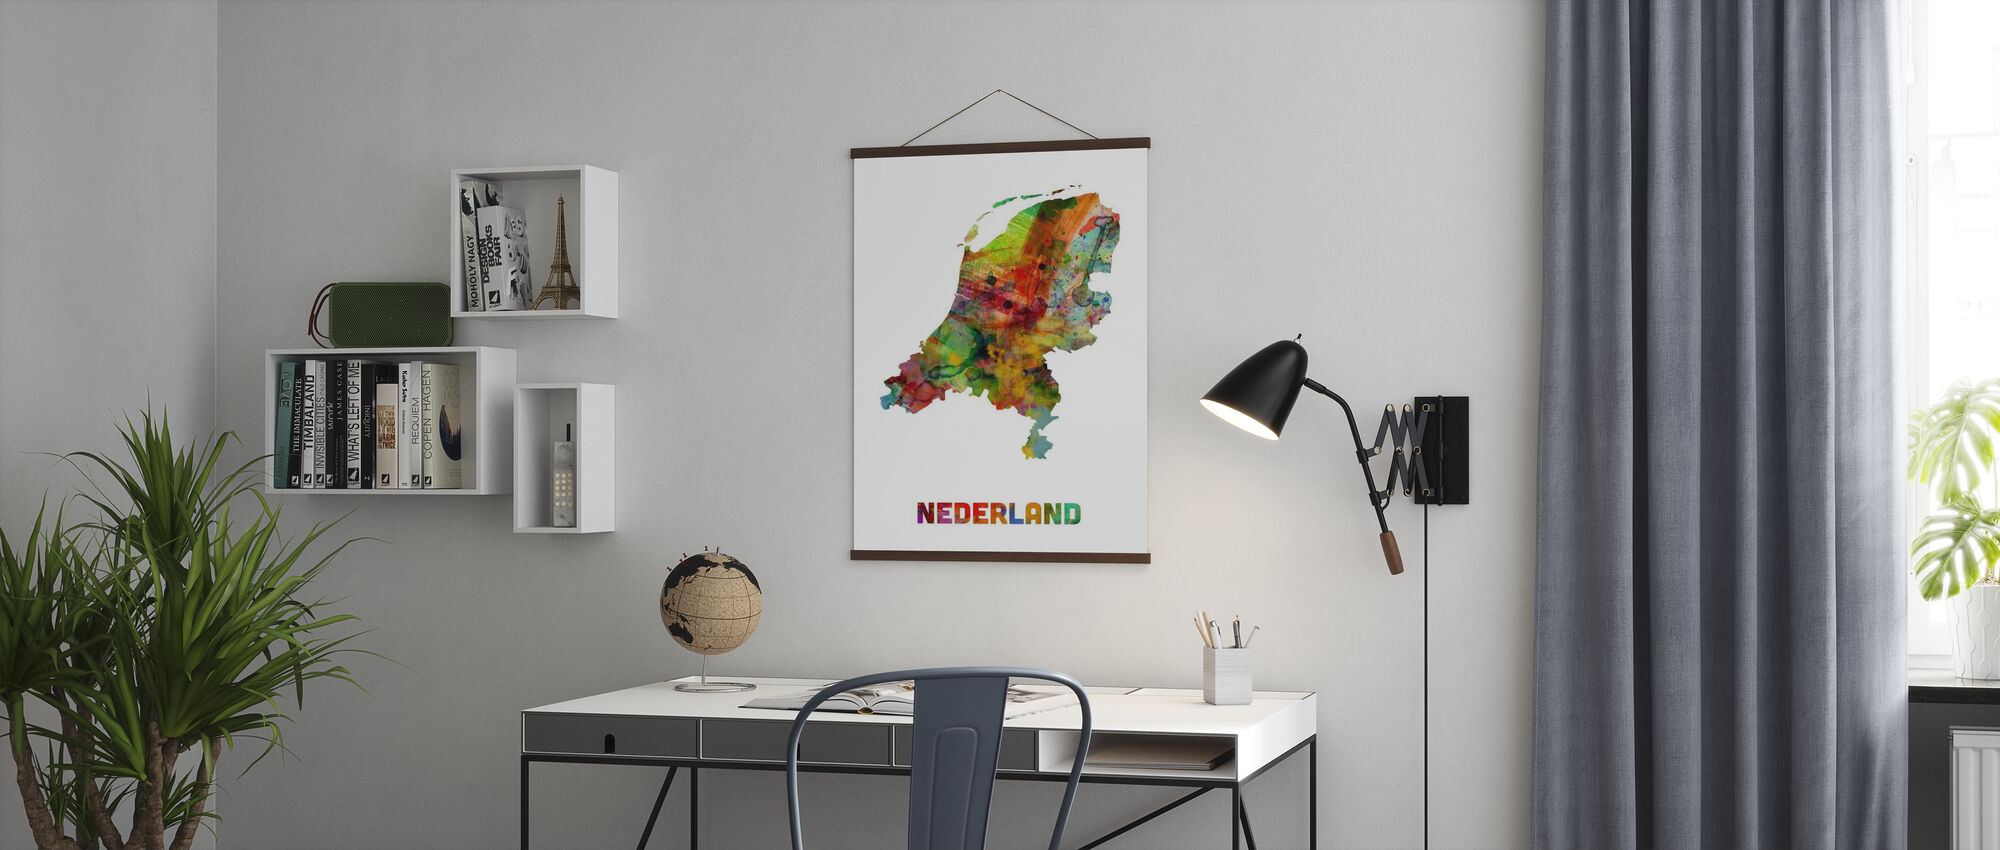 Netherlands Watercolor Map - Poster - Office